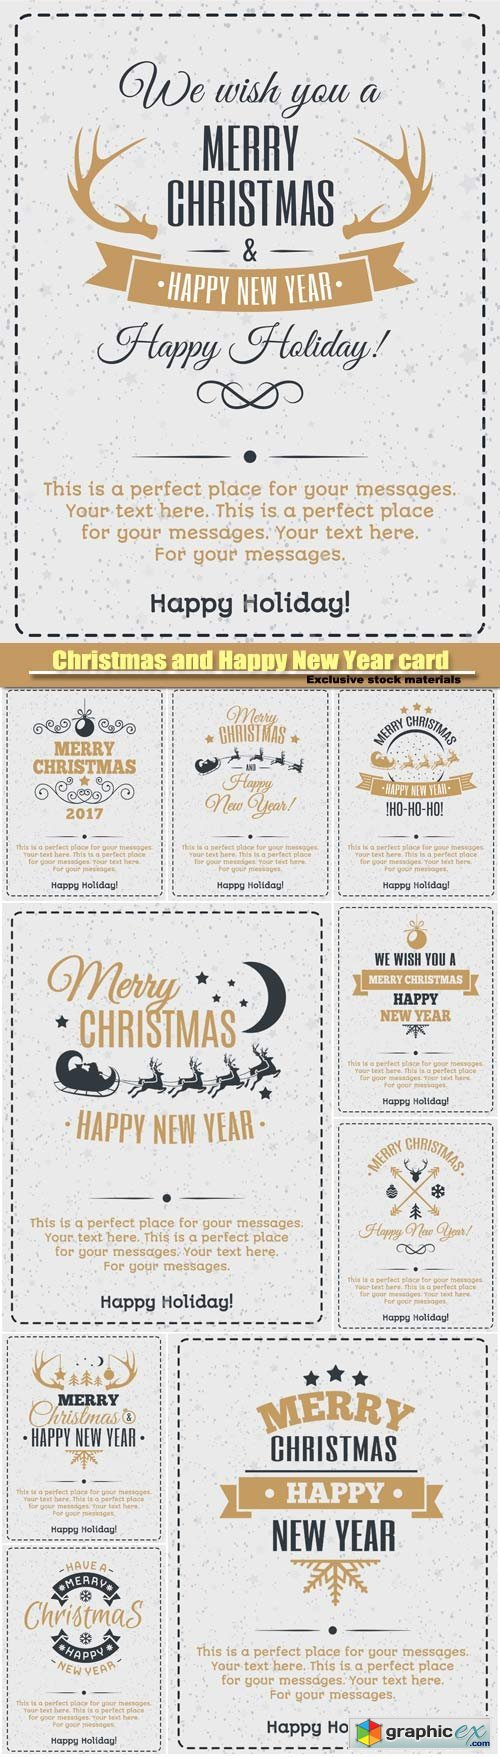 Christmas and Happy New Year card, gold color style, vintage christmas label